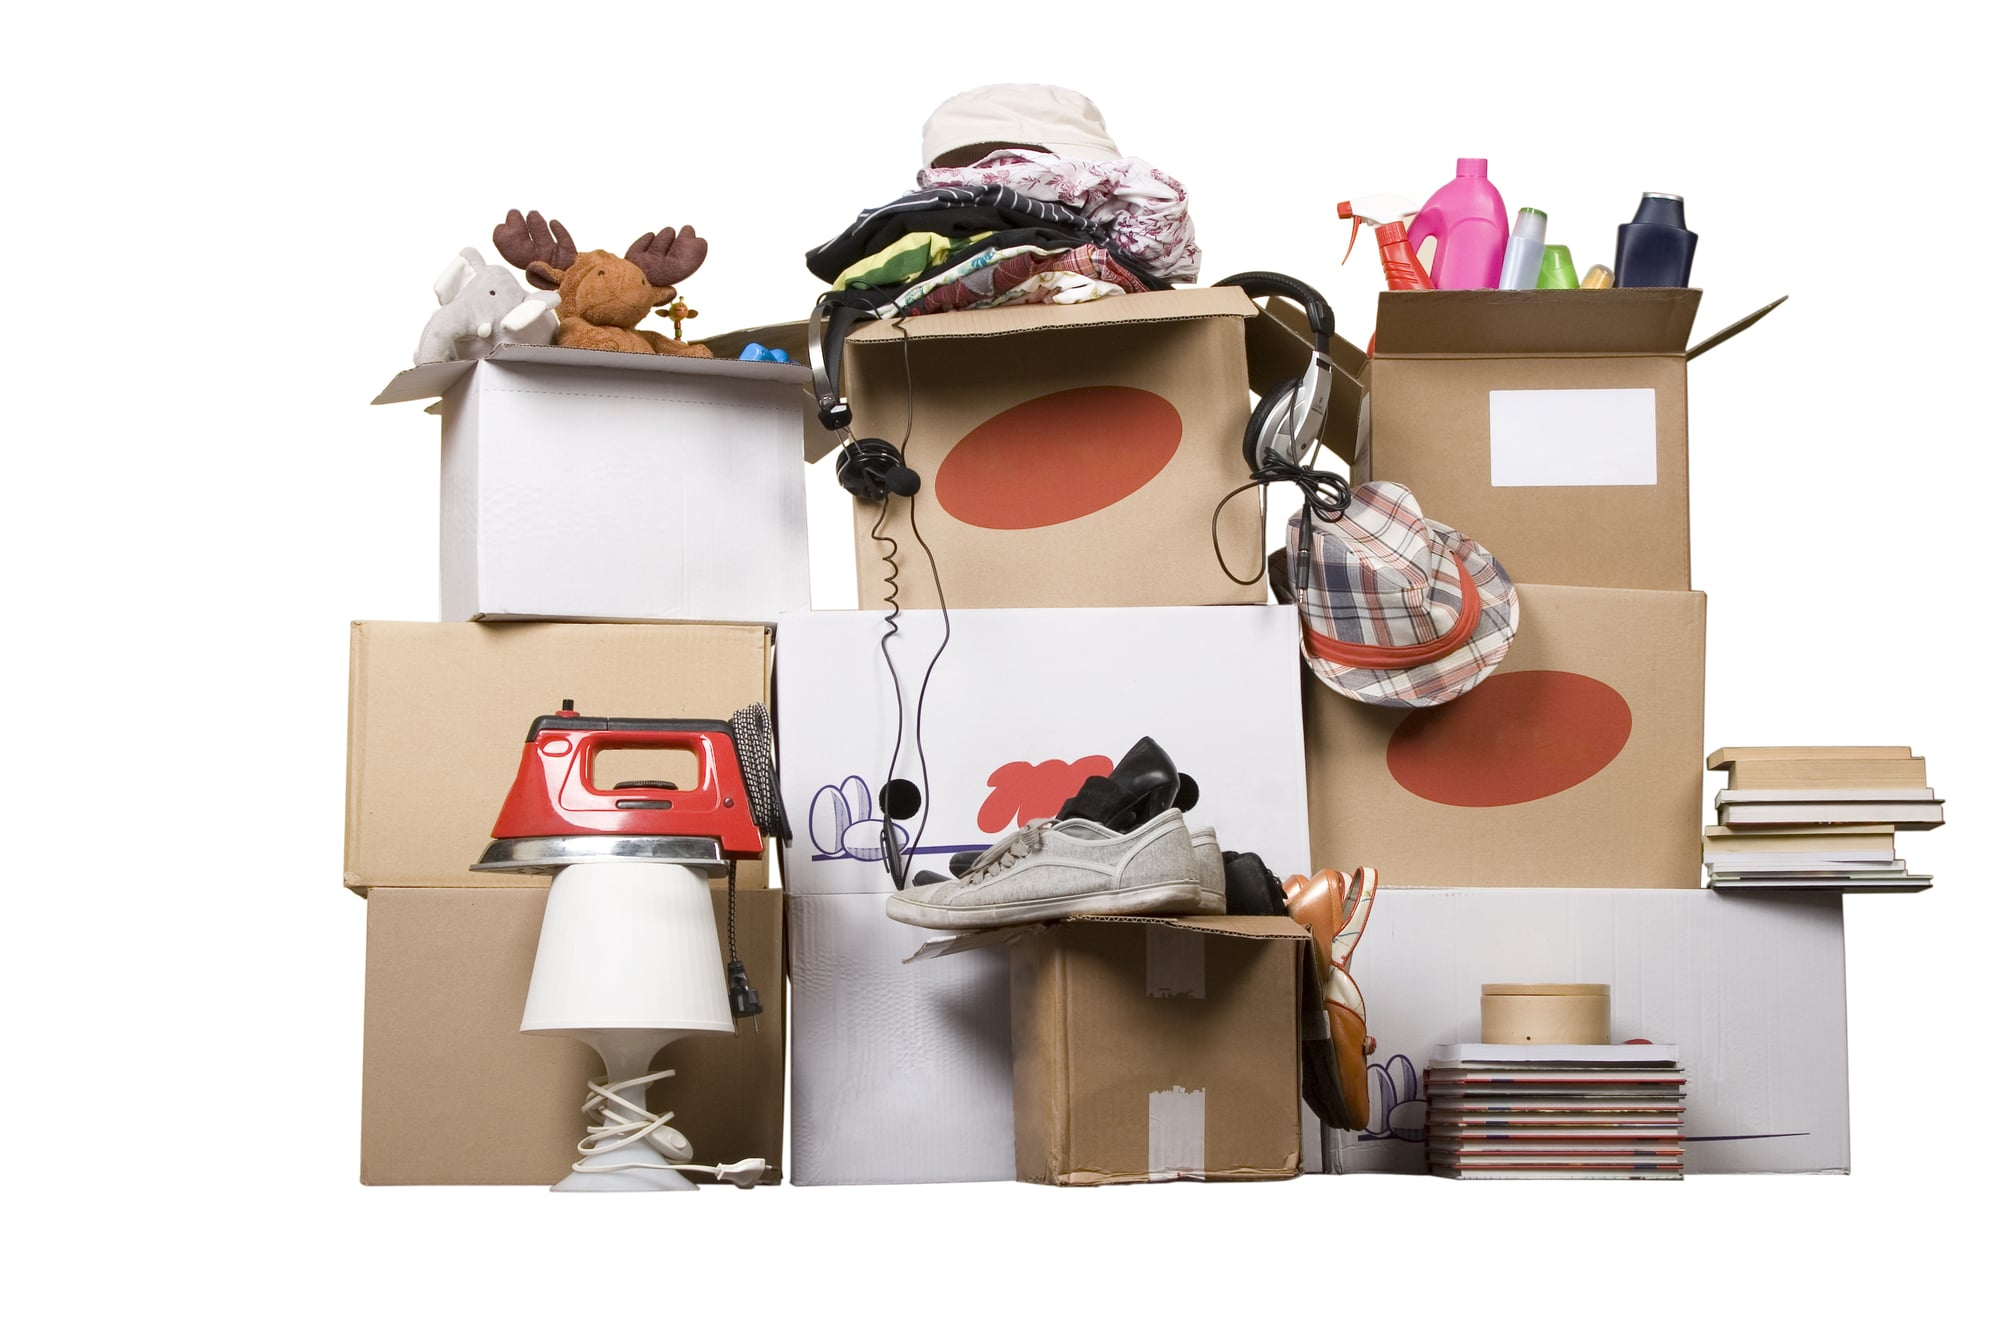 Messy stack of boxes with household items in